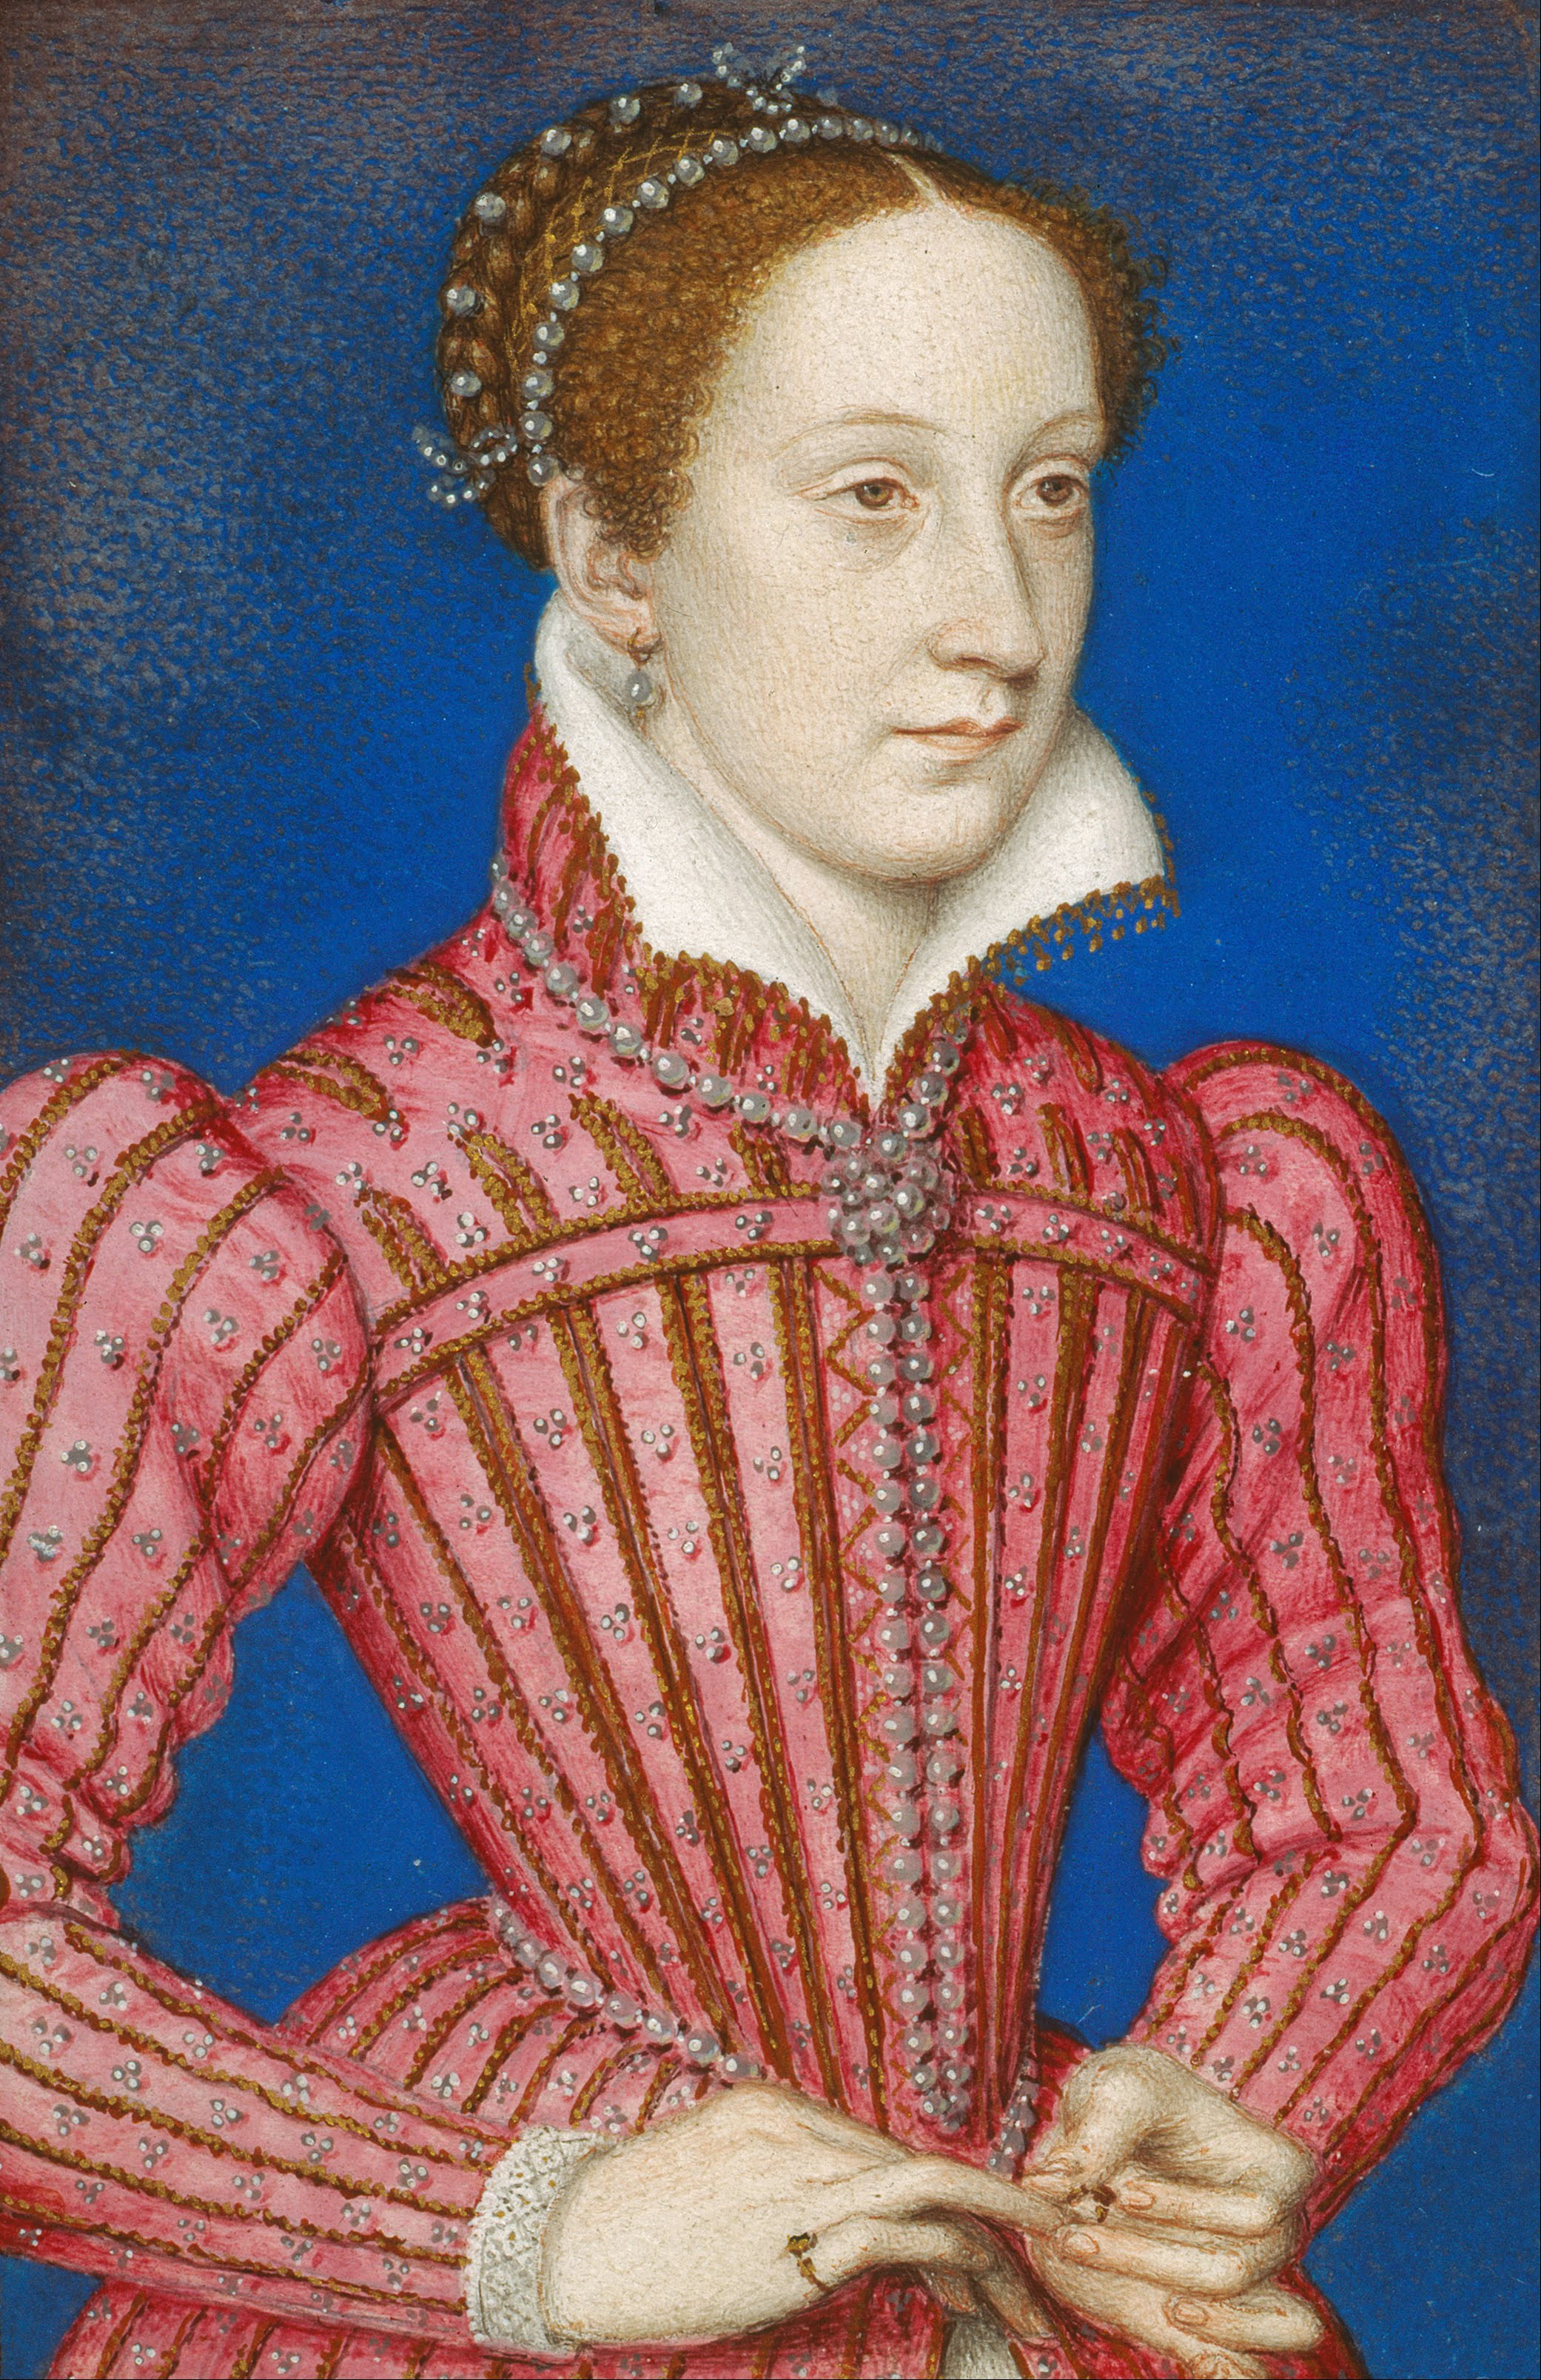 François_Clouet_-_Mary,_Queen_of_Scots_(1542-87)_-_Google_Art_Project